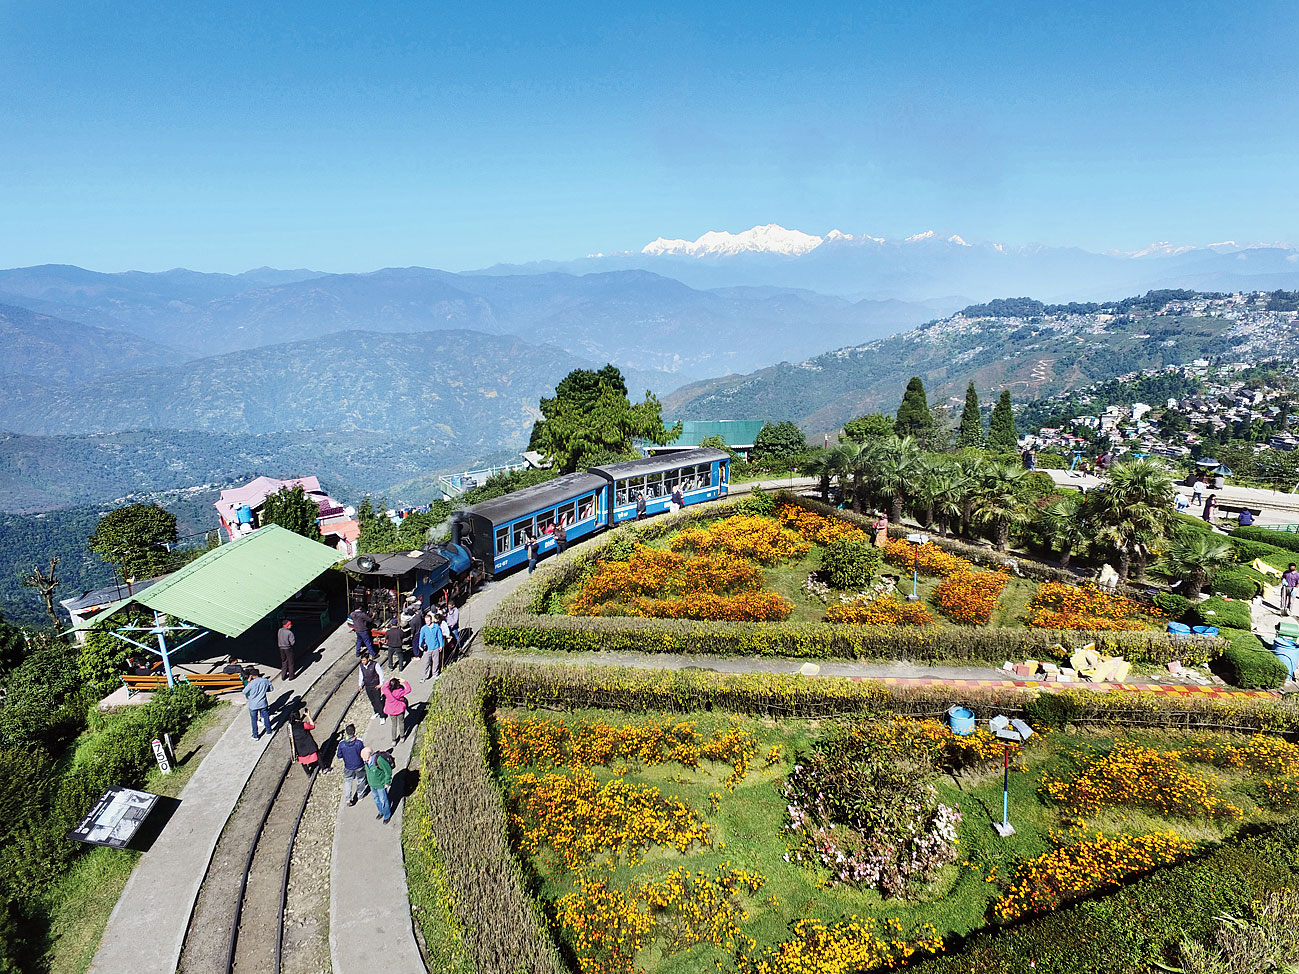 A scenic view of the Batasia Loop in Darjeeling, one of Bengal's tourist magnets.